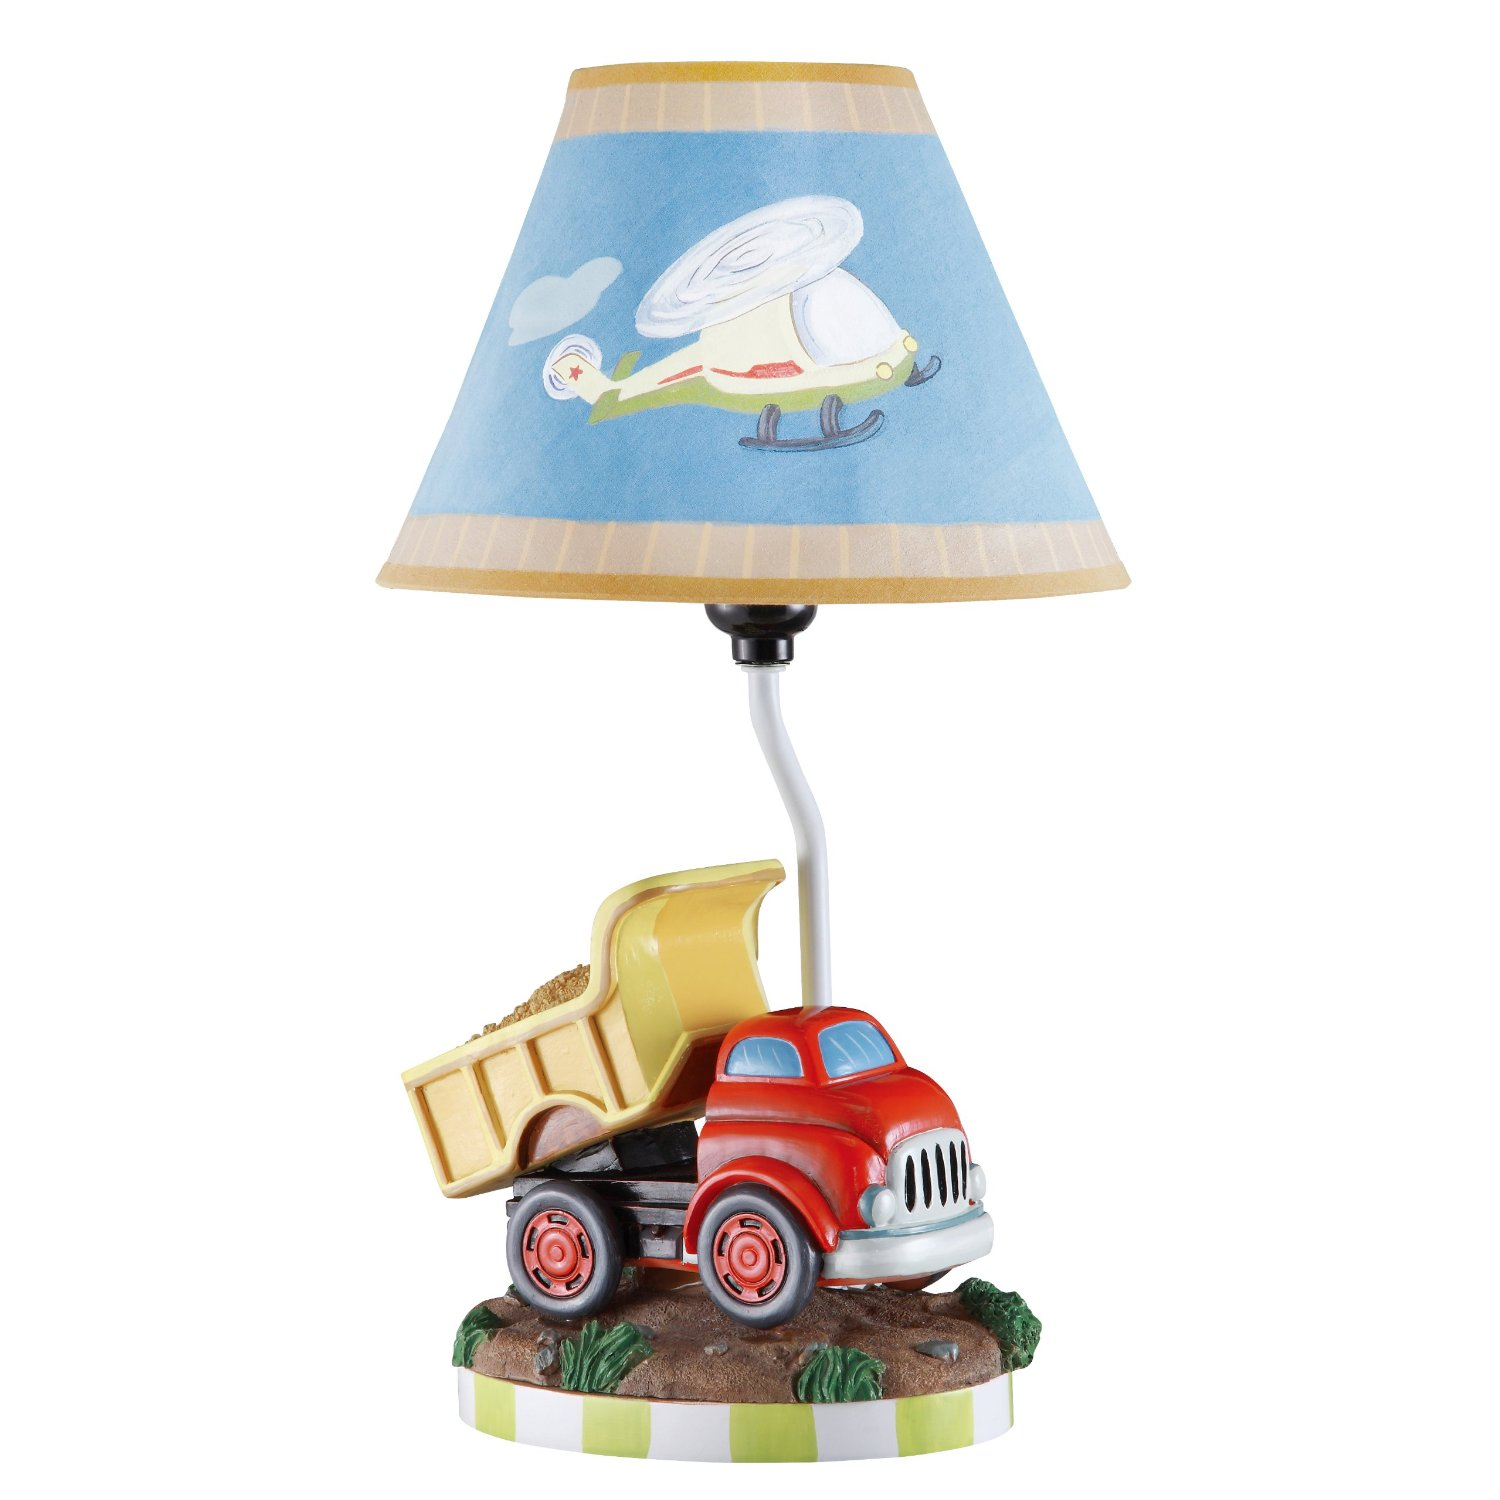 Cute Lamps For Kids Rooms Lighting  Interior Decorating Idea